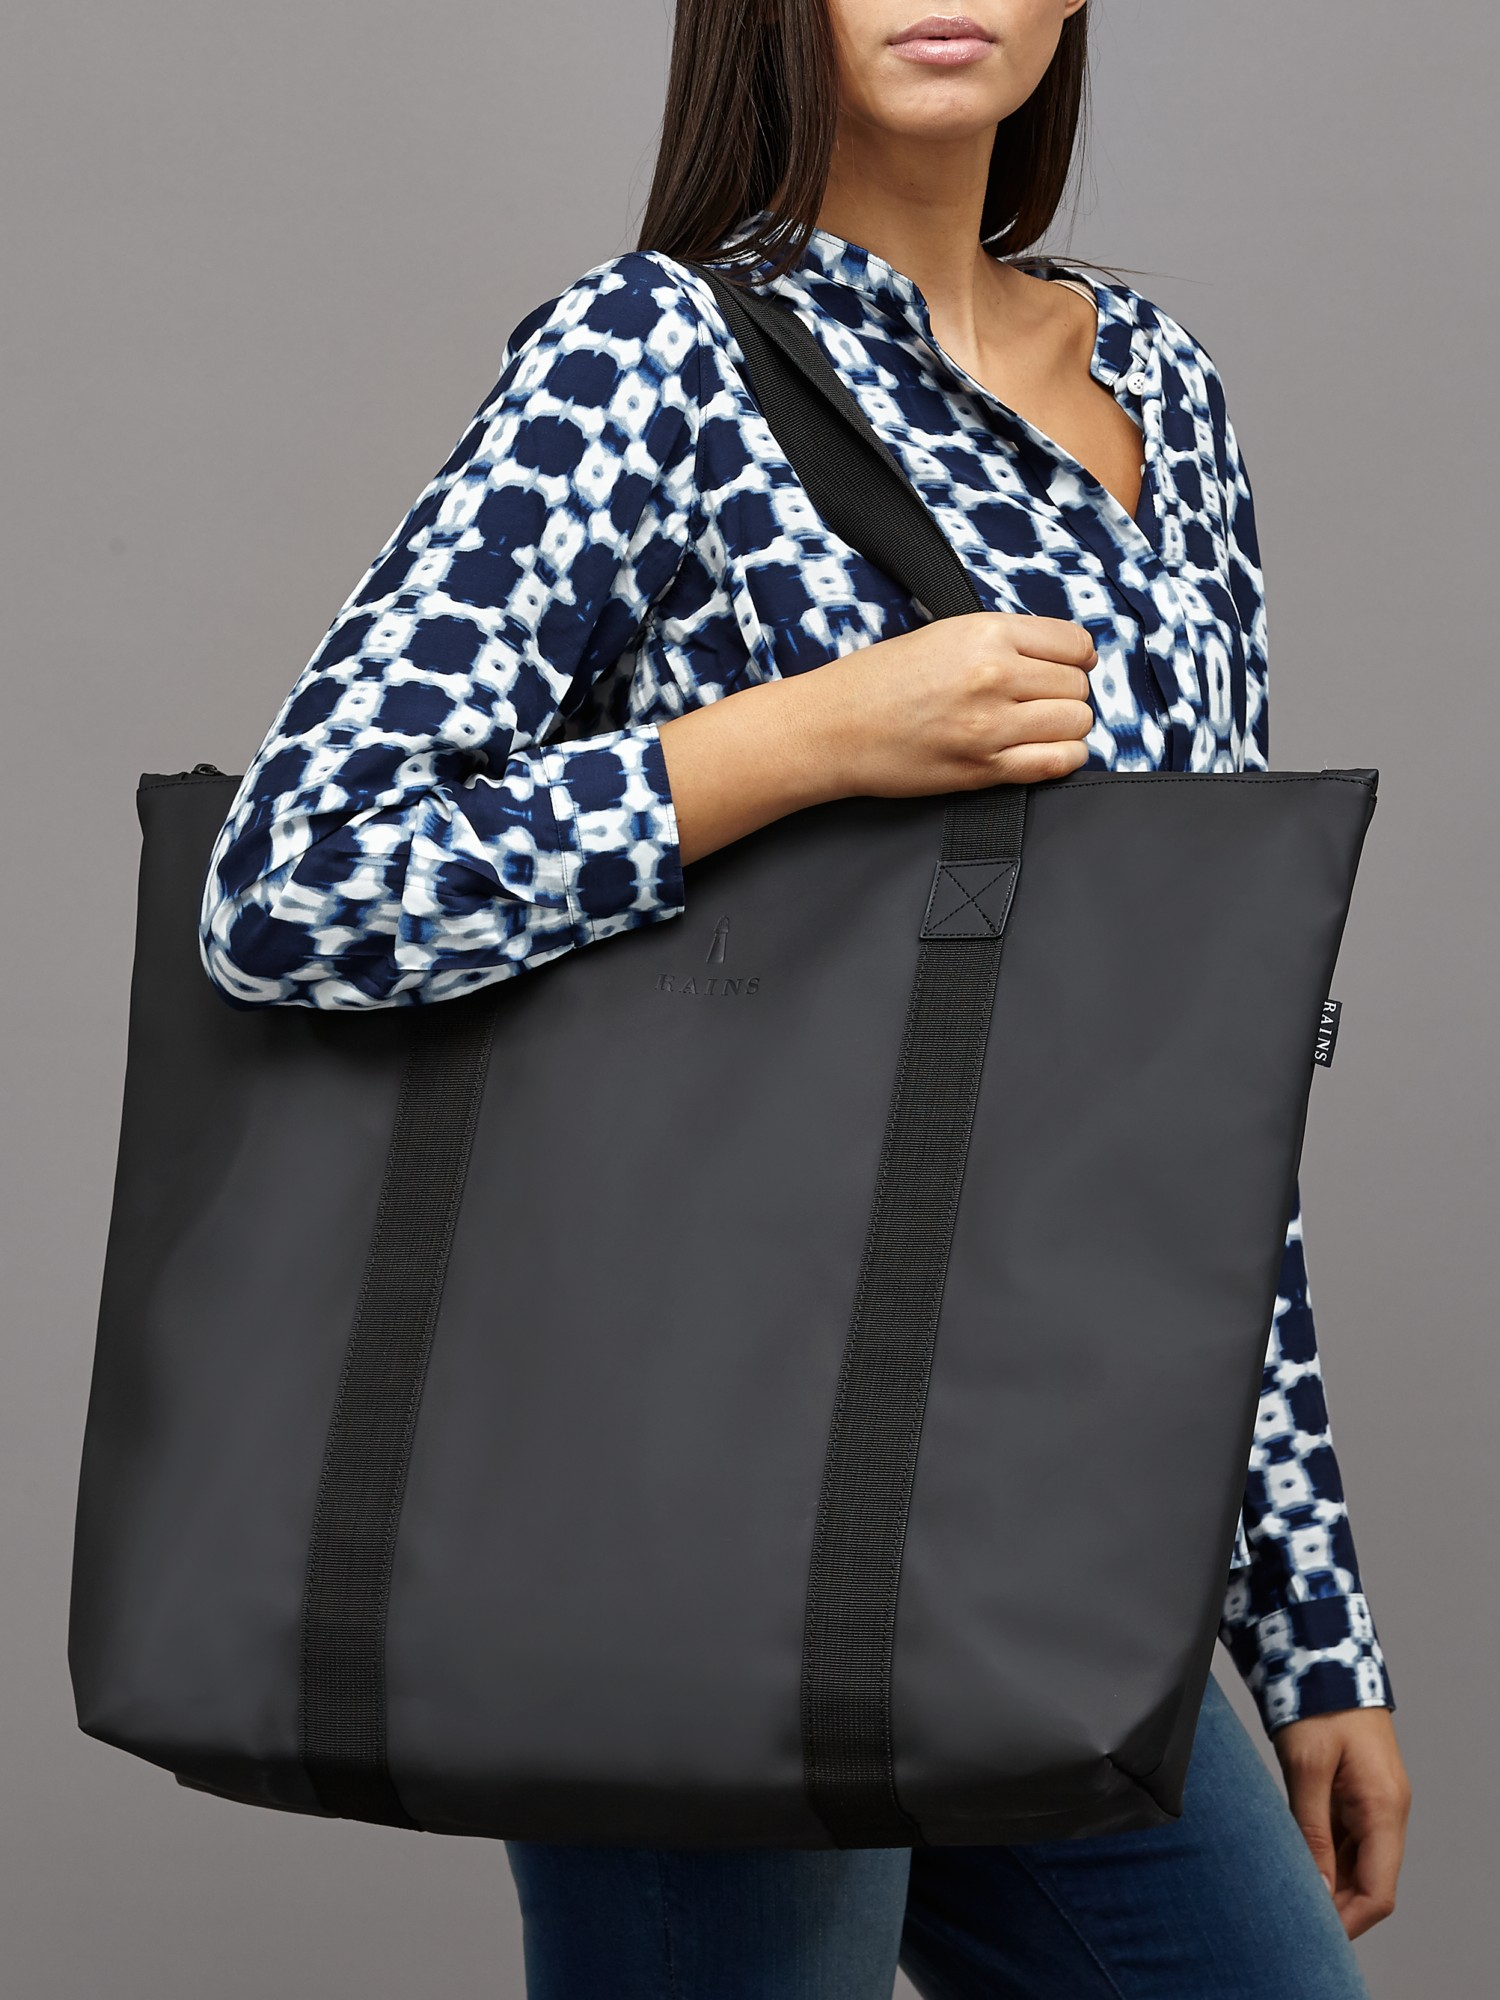 Rains Tote Bag in Black - Lyst 947b7943b5578